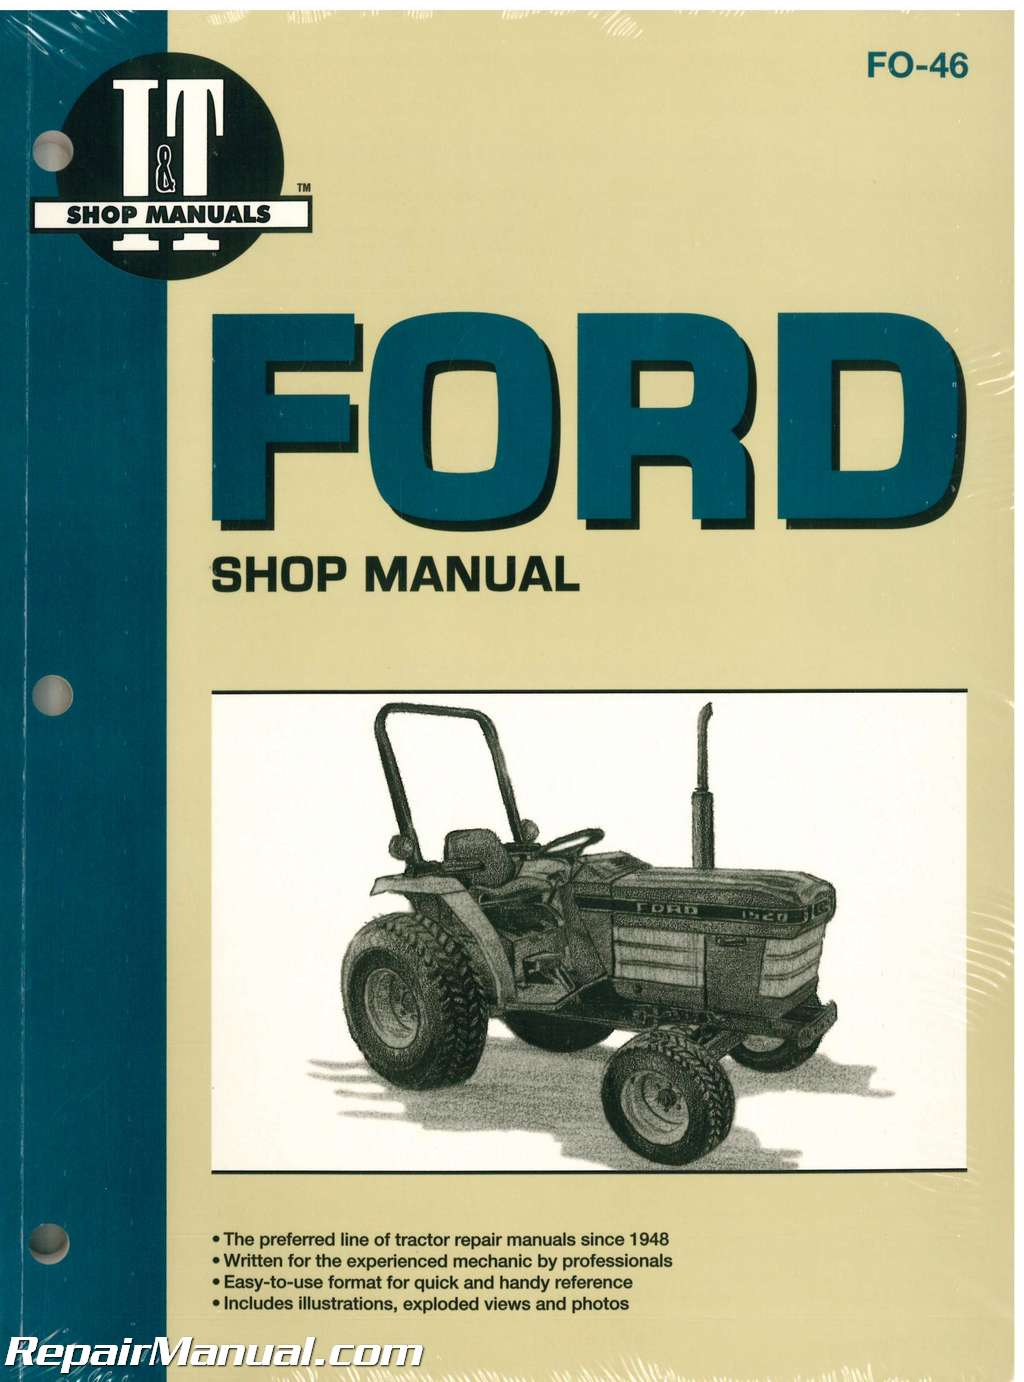 John Deere 4600 Tractor Wiring Diagram 1520 Ford Hydraulic Not Lossing New Holland 1120 1220 1320 1720 1920 2120 Manual Rh Repairmanual Com Parts Breakdown 3000